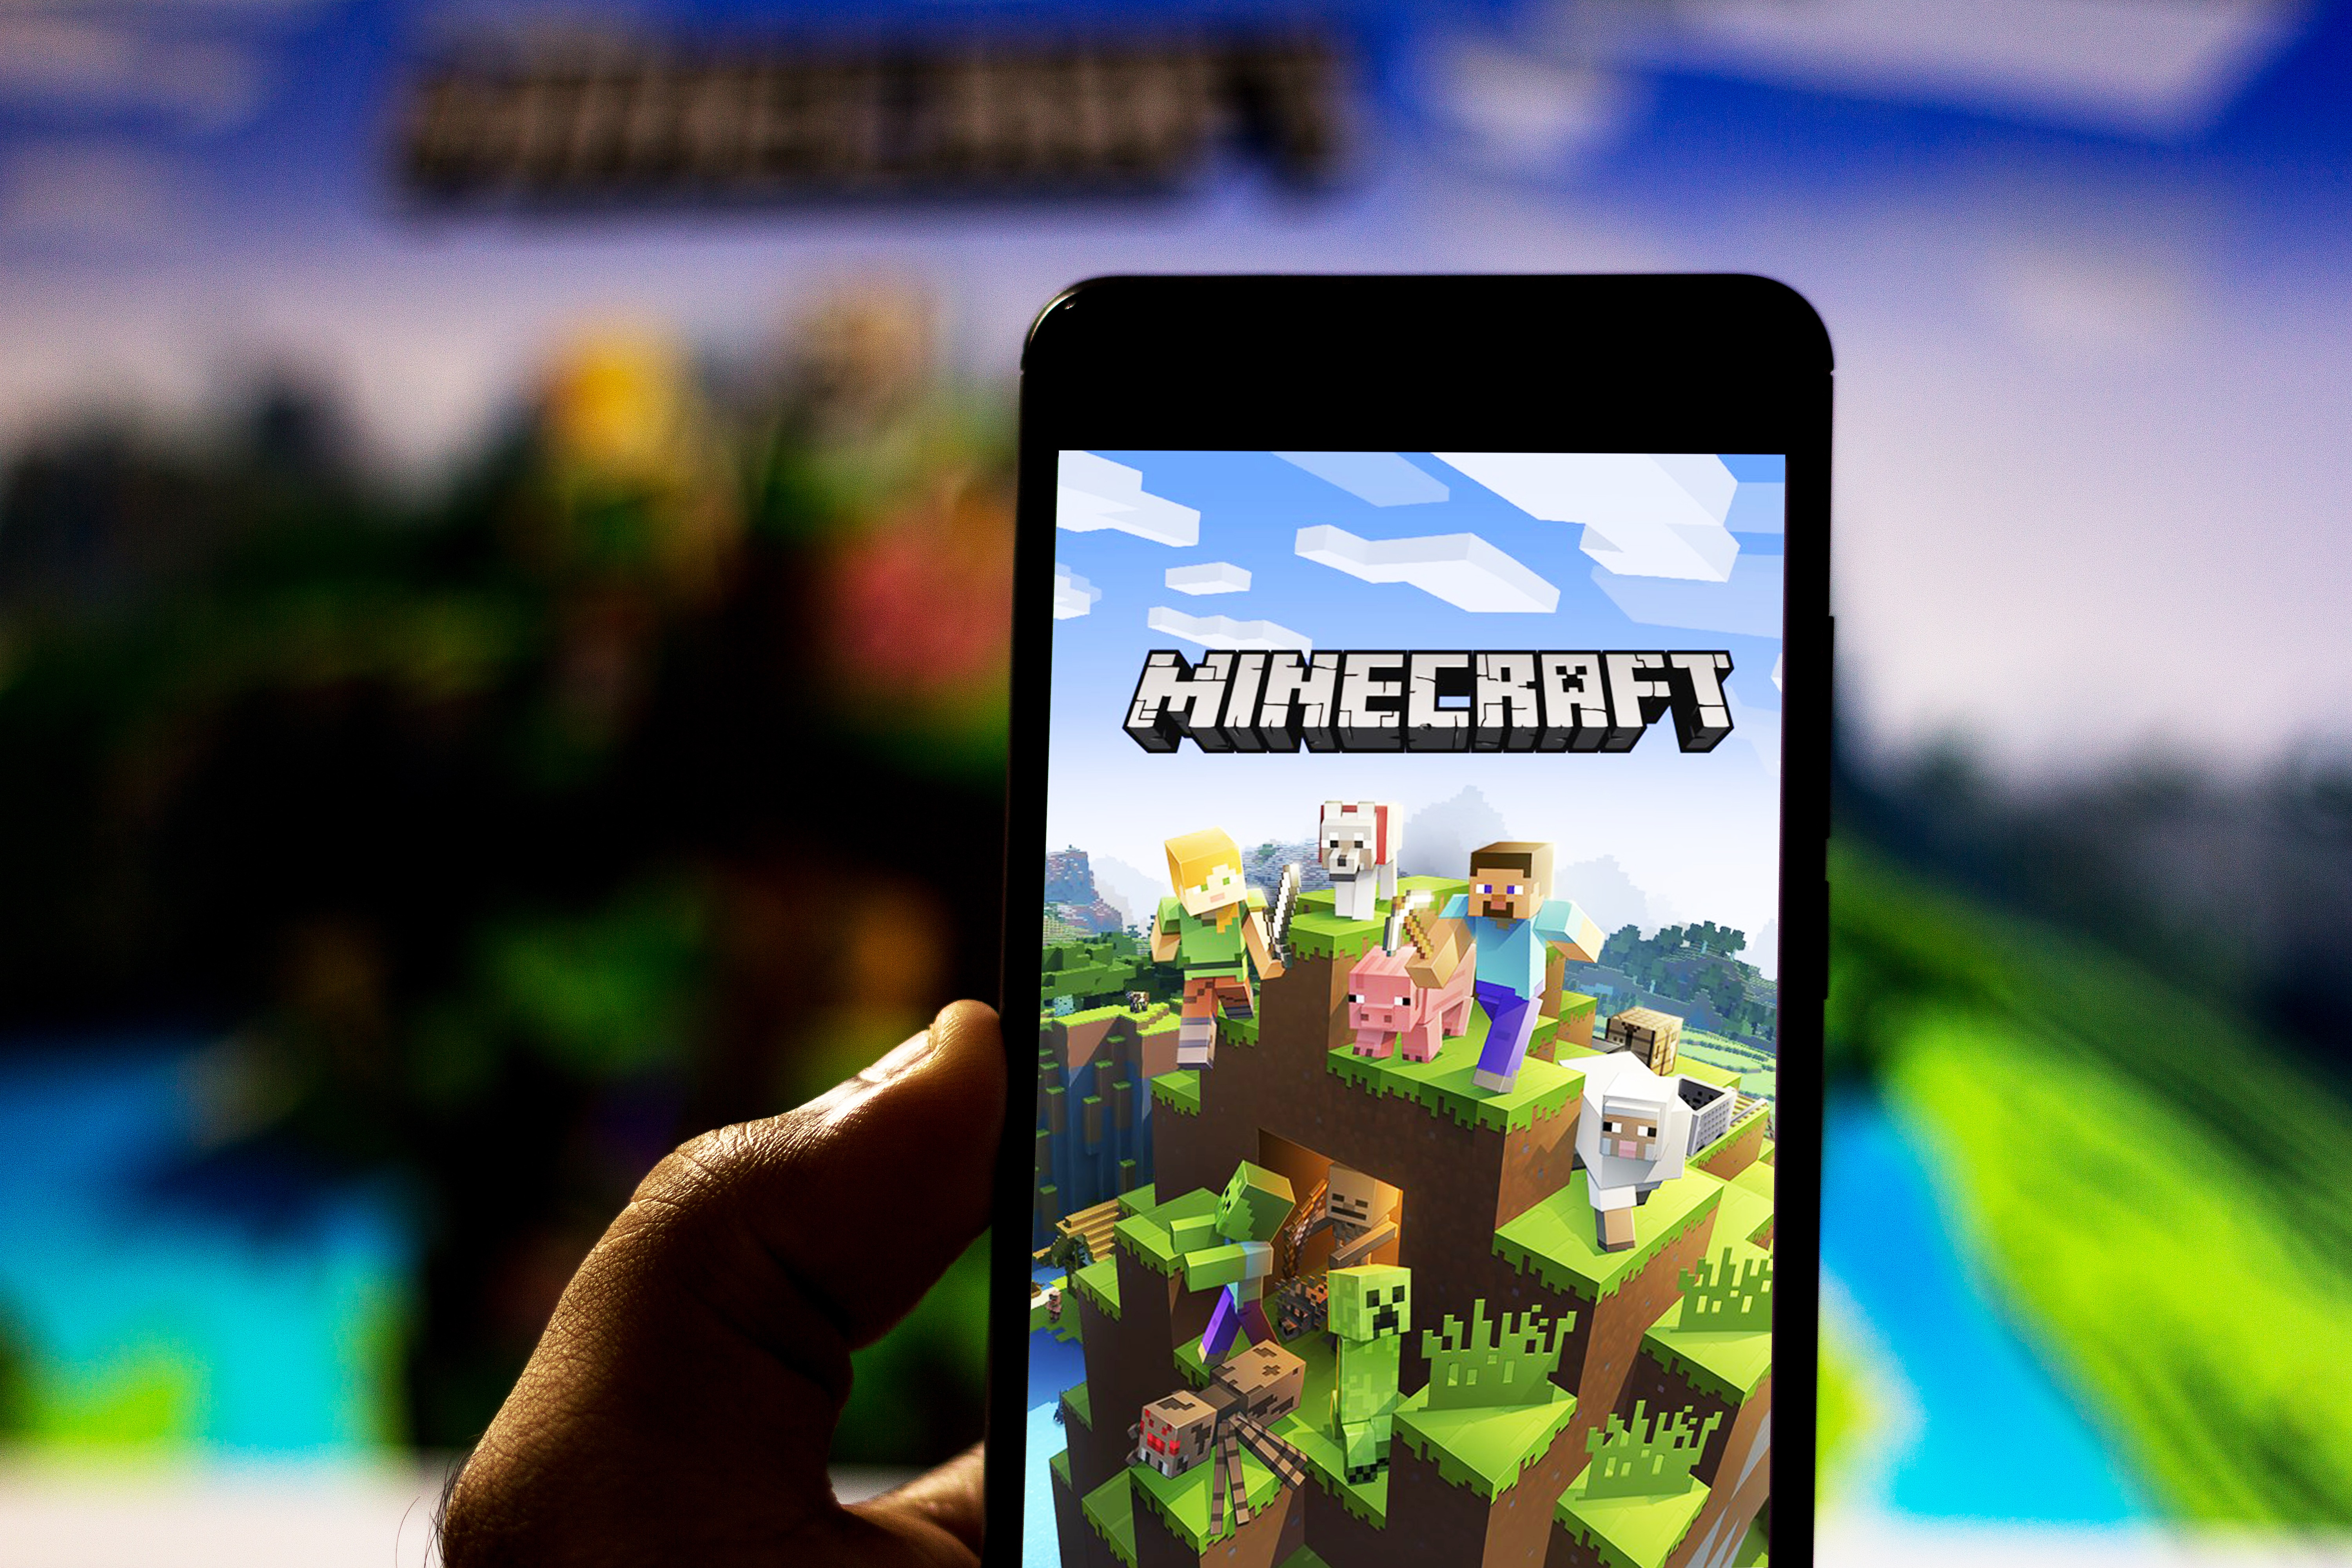 Microsoft Shows Off Augmented Reality Minecraft Game